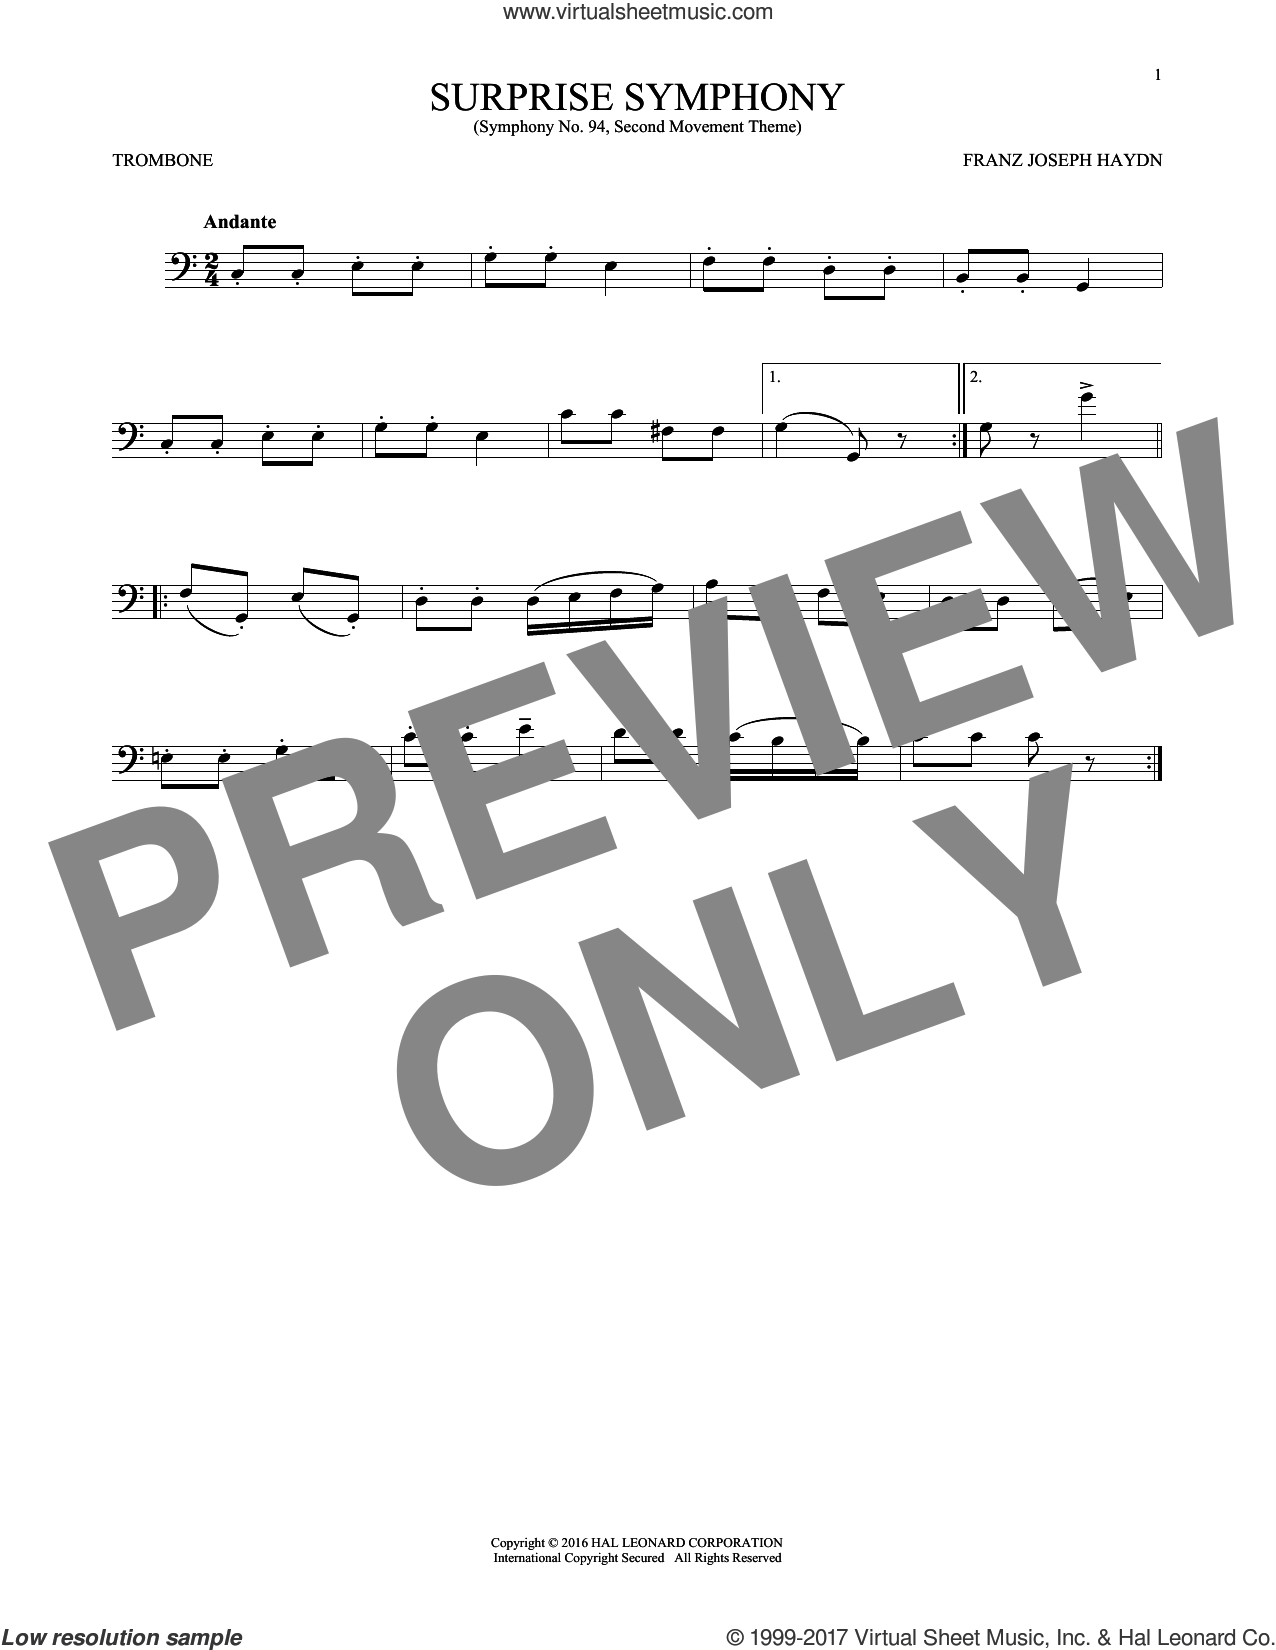 The Surprise Symphony sheet music for trombone solo by Franz Joseph Haydn, classical score, intermediate skill level